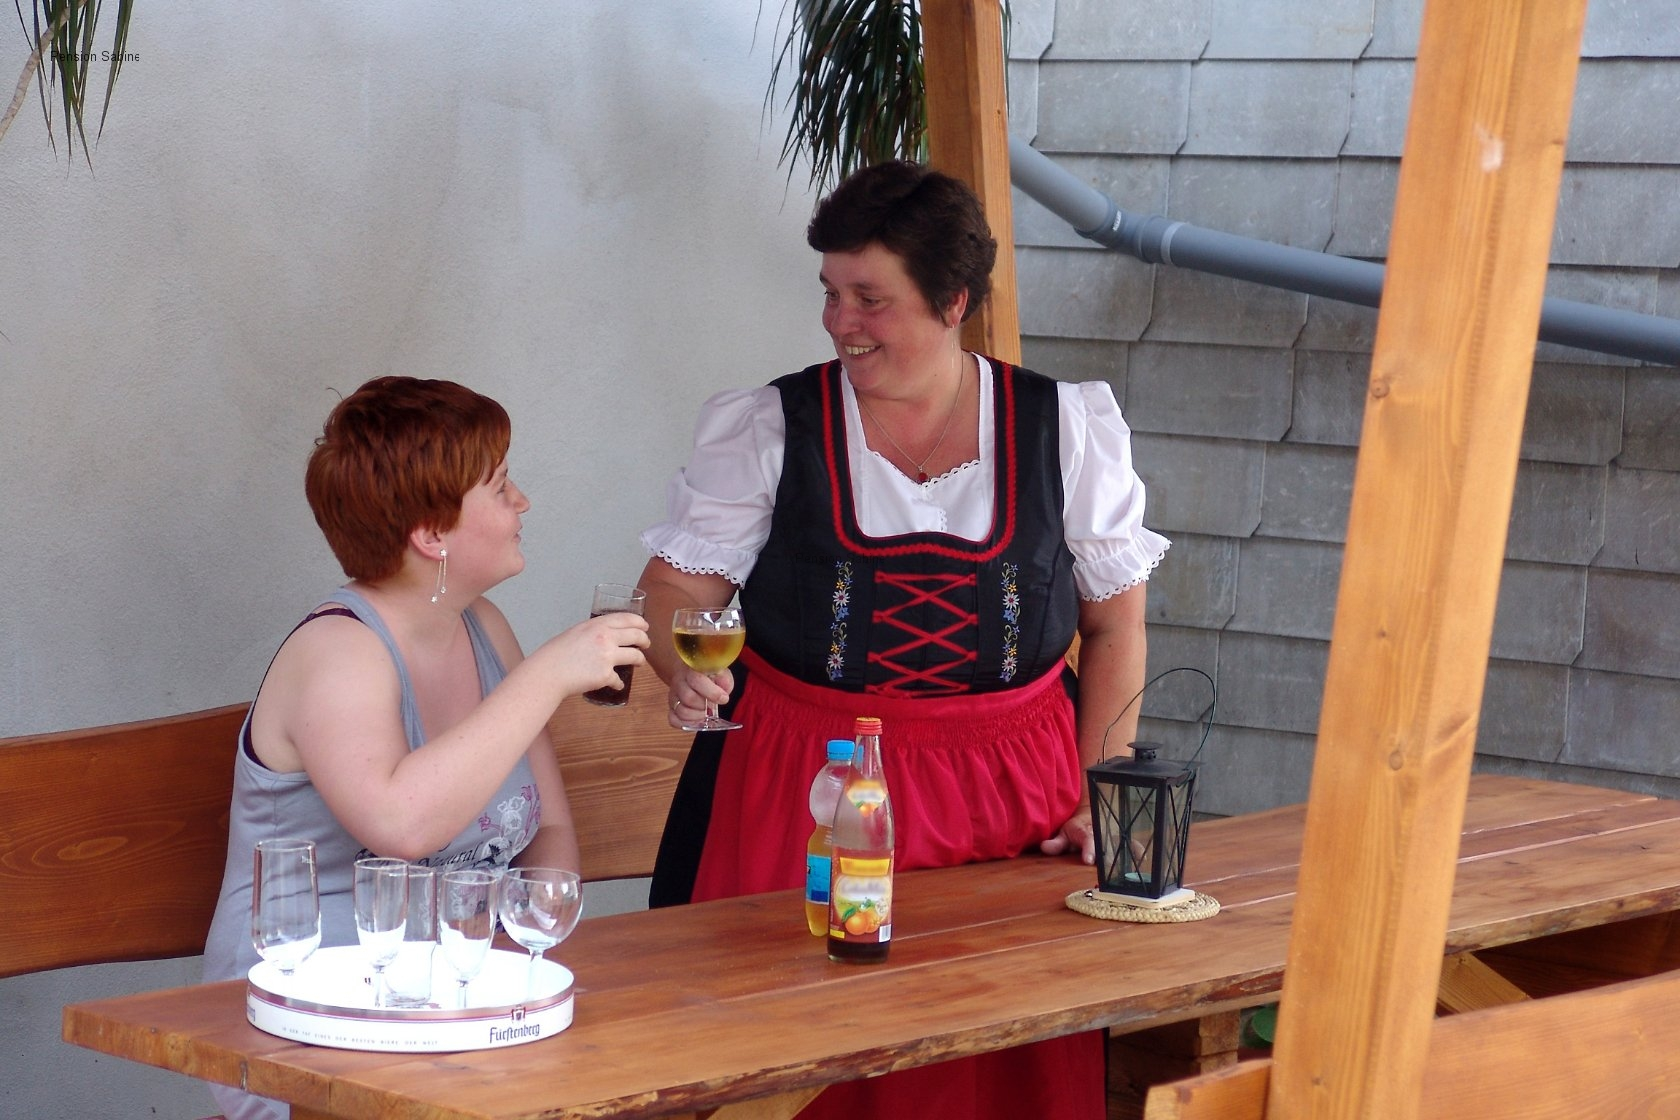 Mrs. Hampe serving a guest a drink